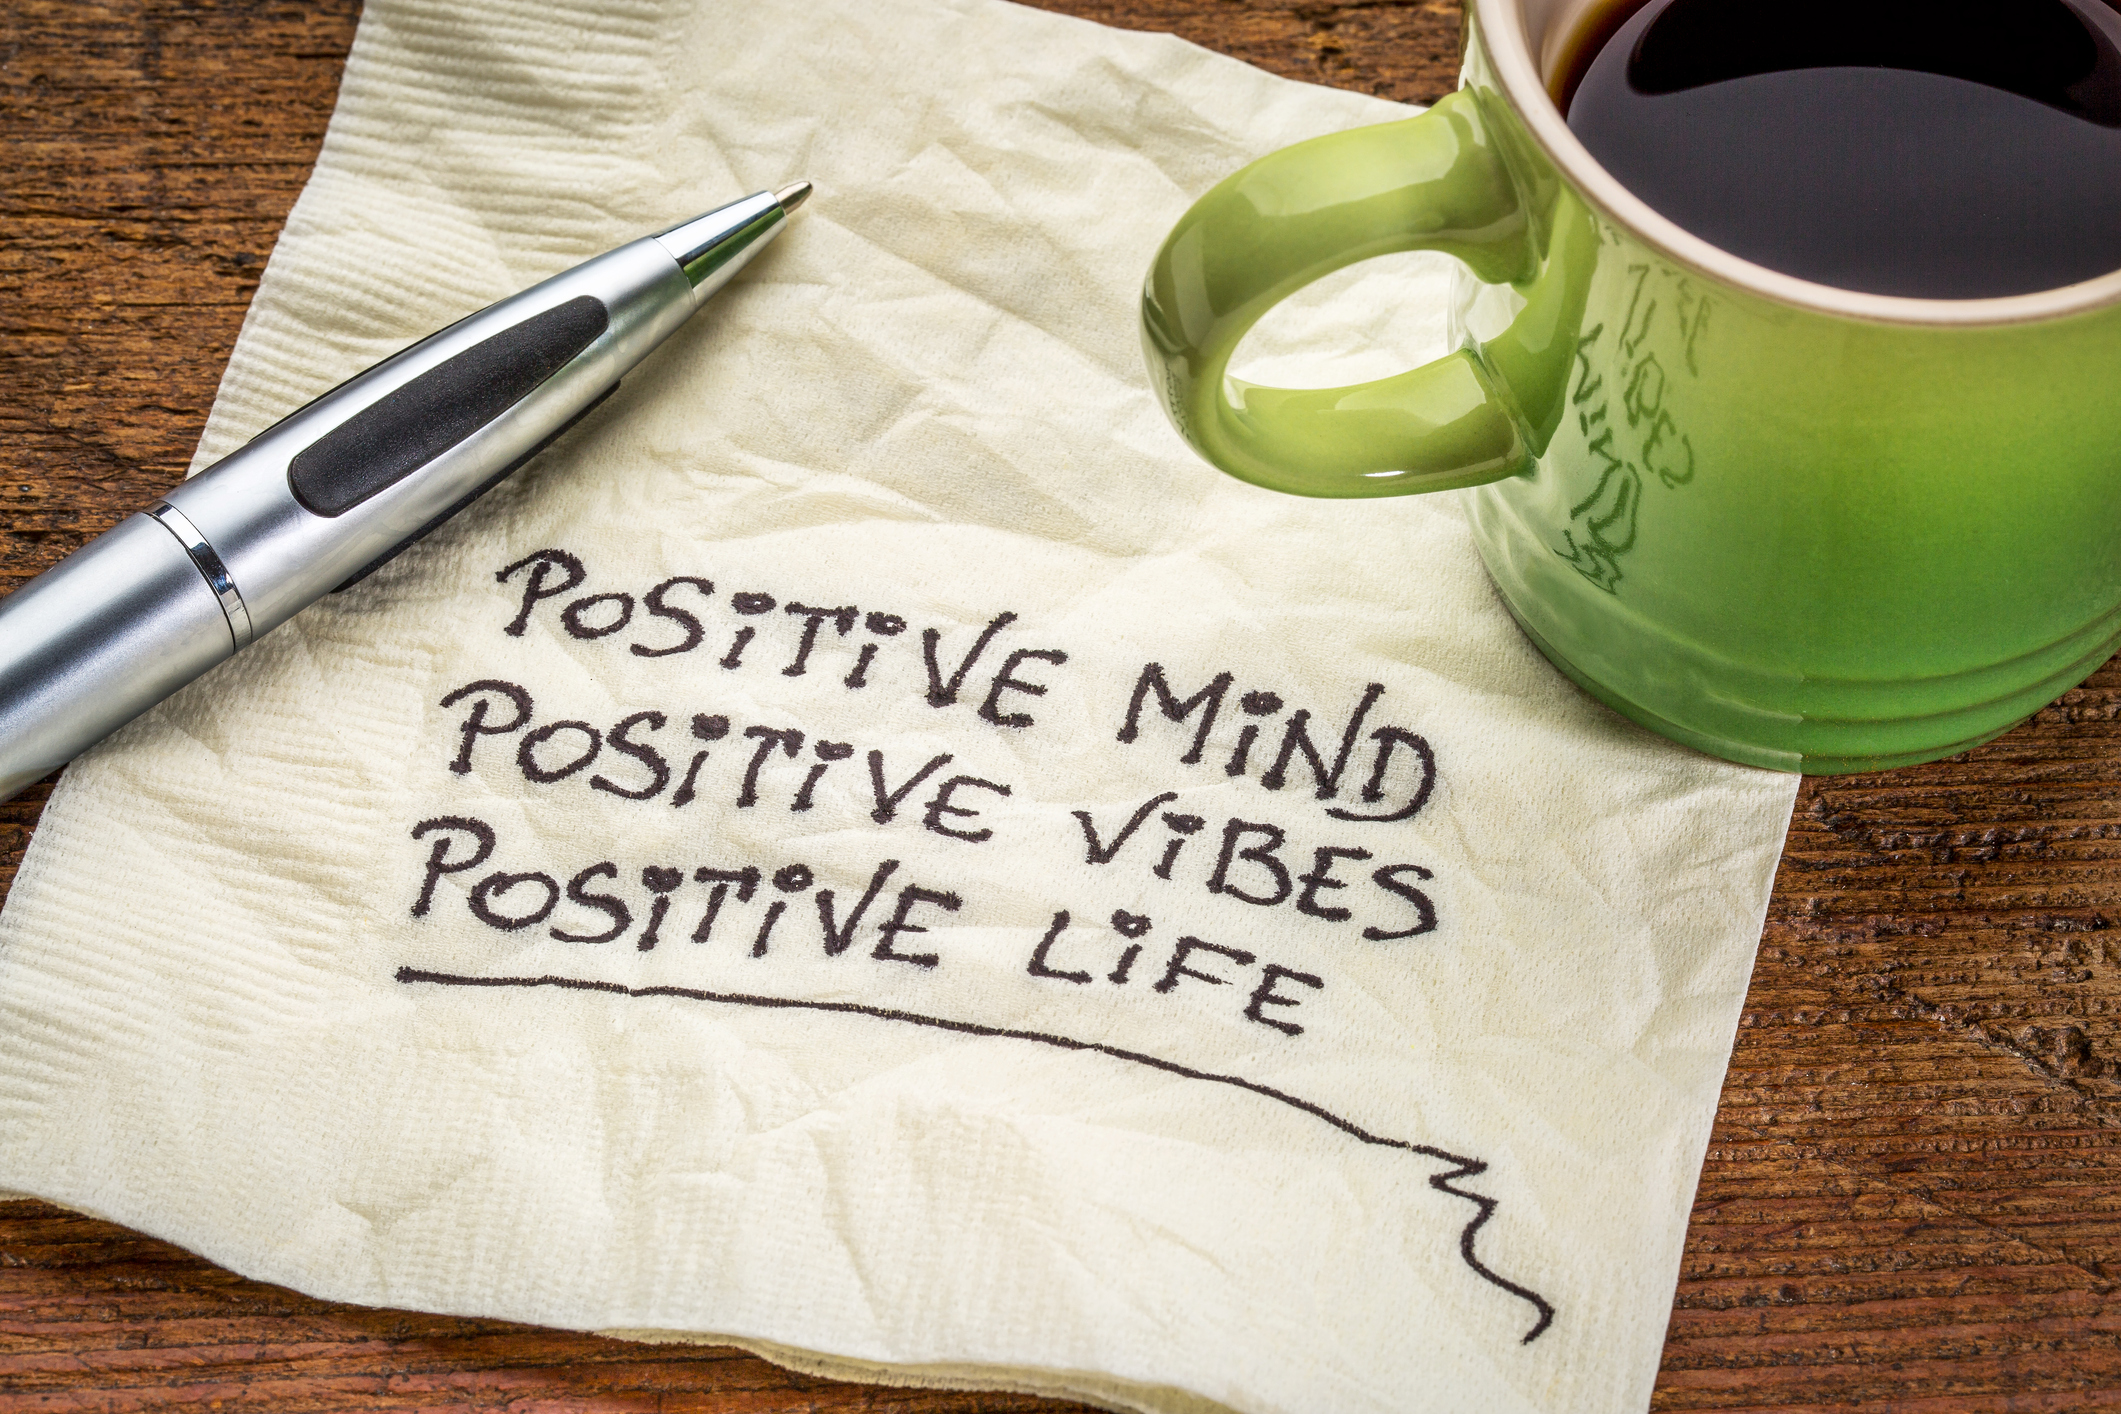 Positive Mind Vibes And Life Additude